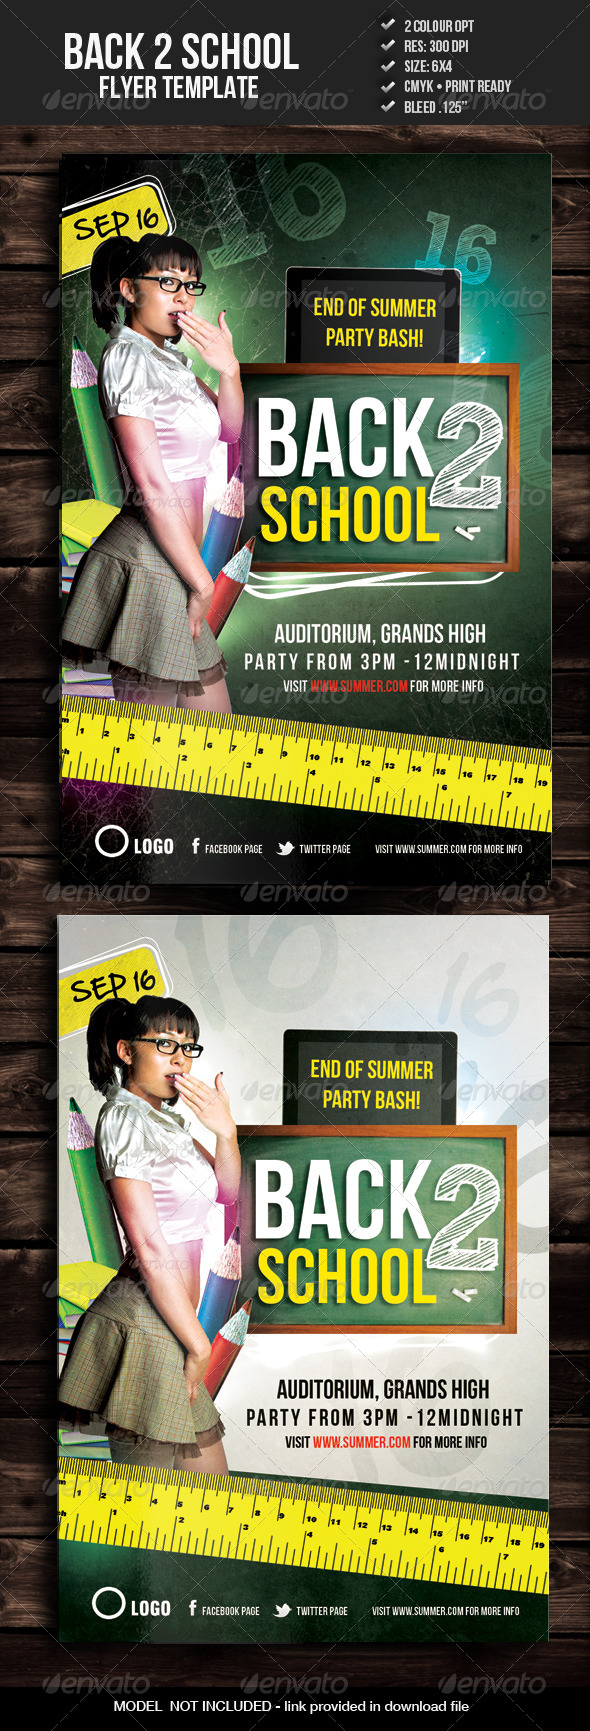 GraphicRiver Back to School Party Flyer 5346154